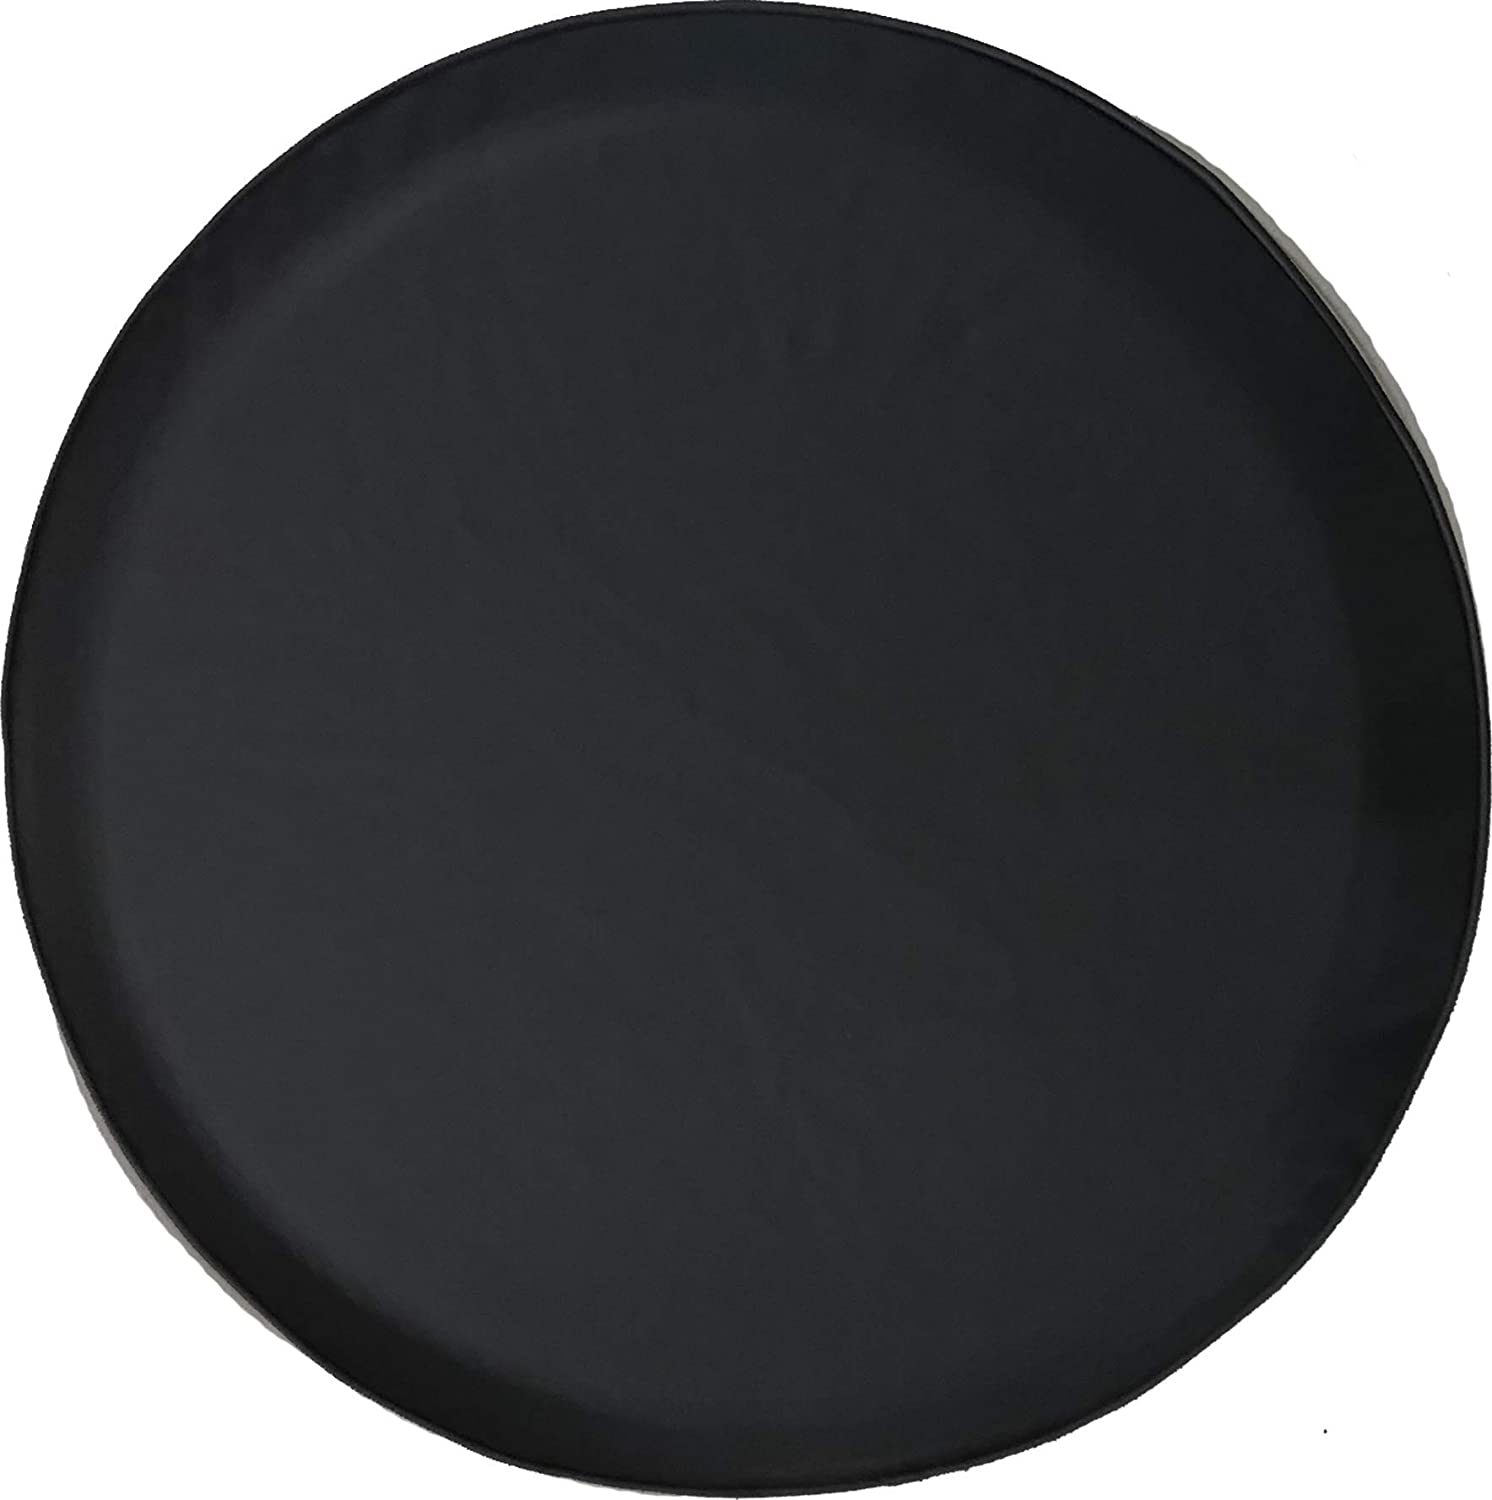 Top Quality Blank Black Dealer Quality Spare Tire Cover OEM Vinyl 26.5, Black American Educational Products Marine Grade